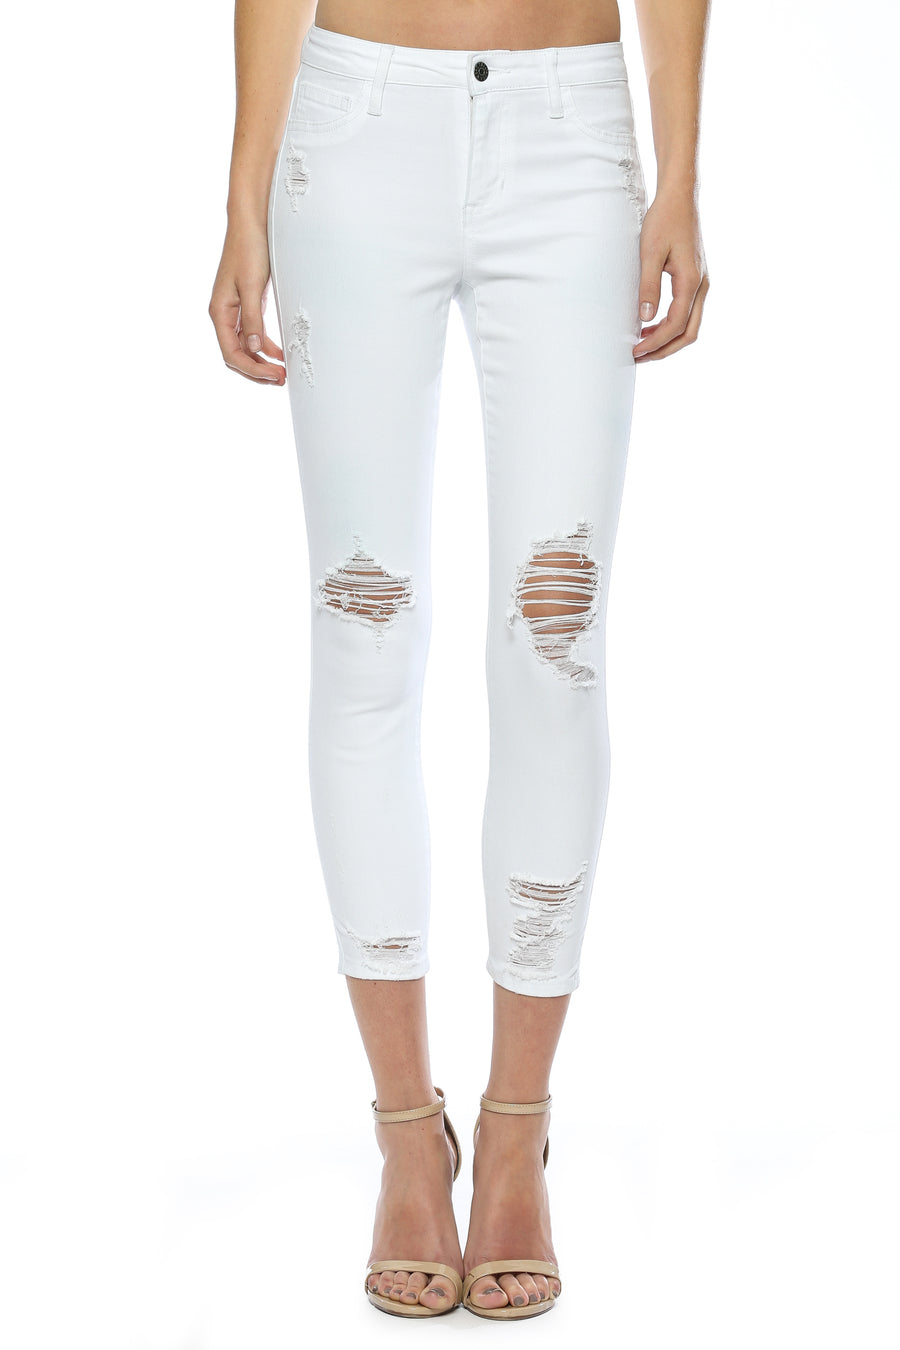 Mid Rise Open Knee White Wash Crop Skinny